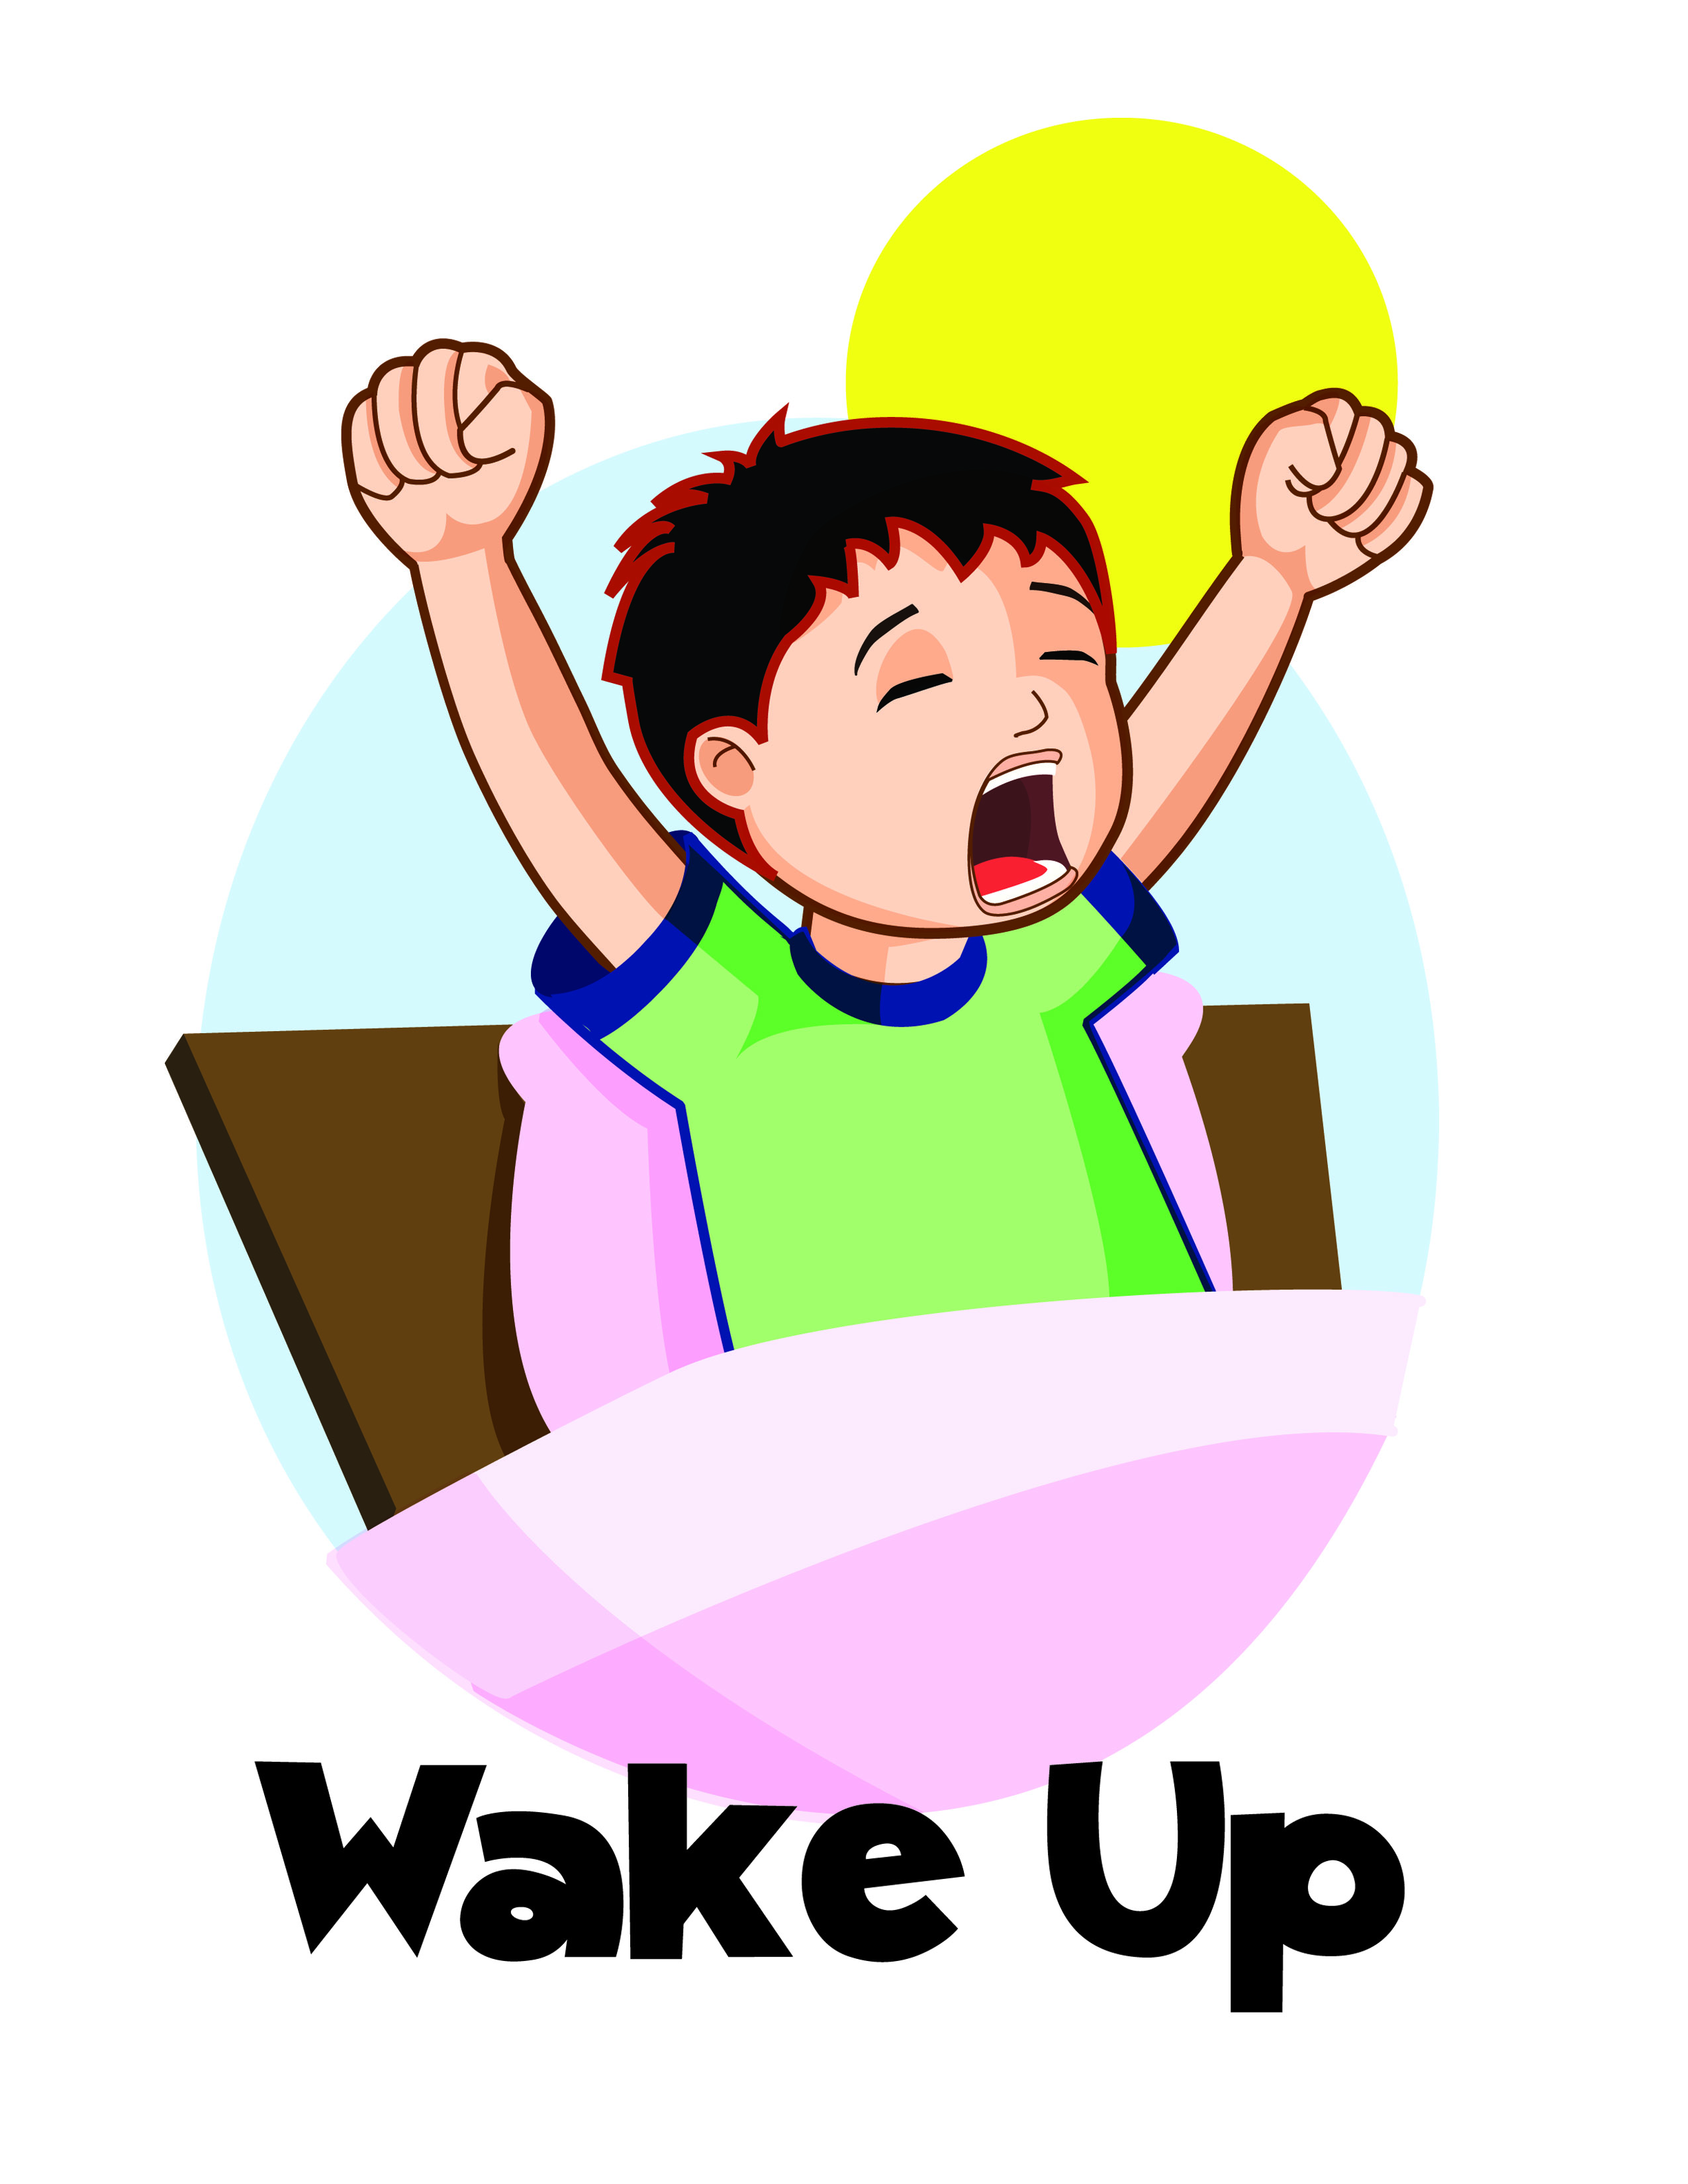 Get In Bed Clipart - Clipart Kid